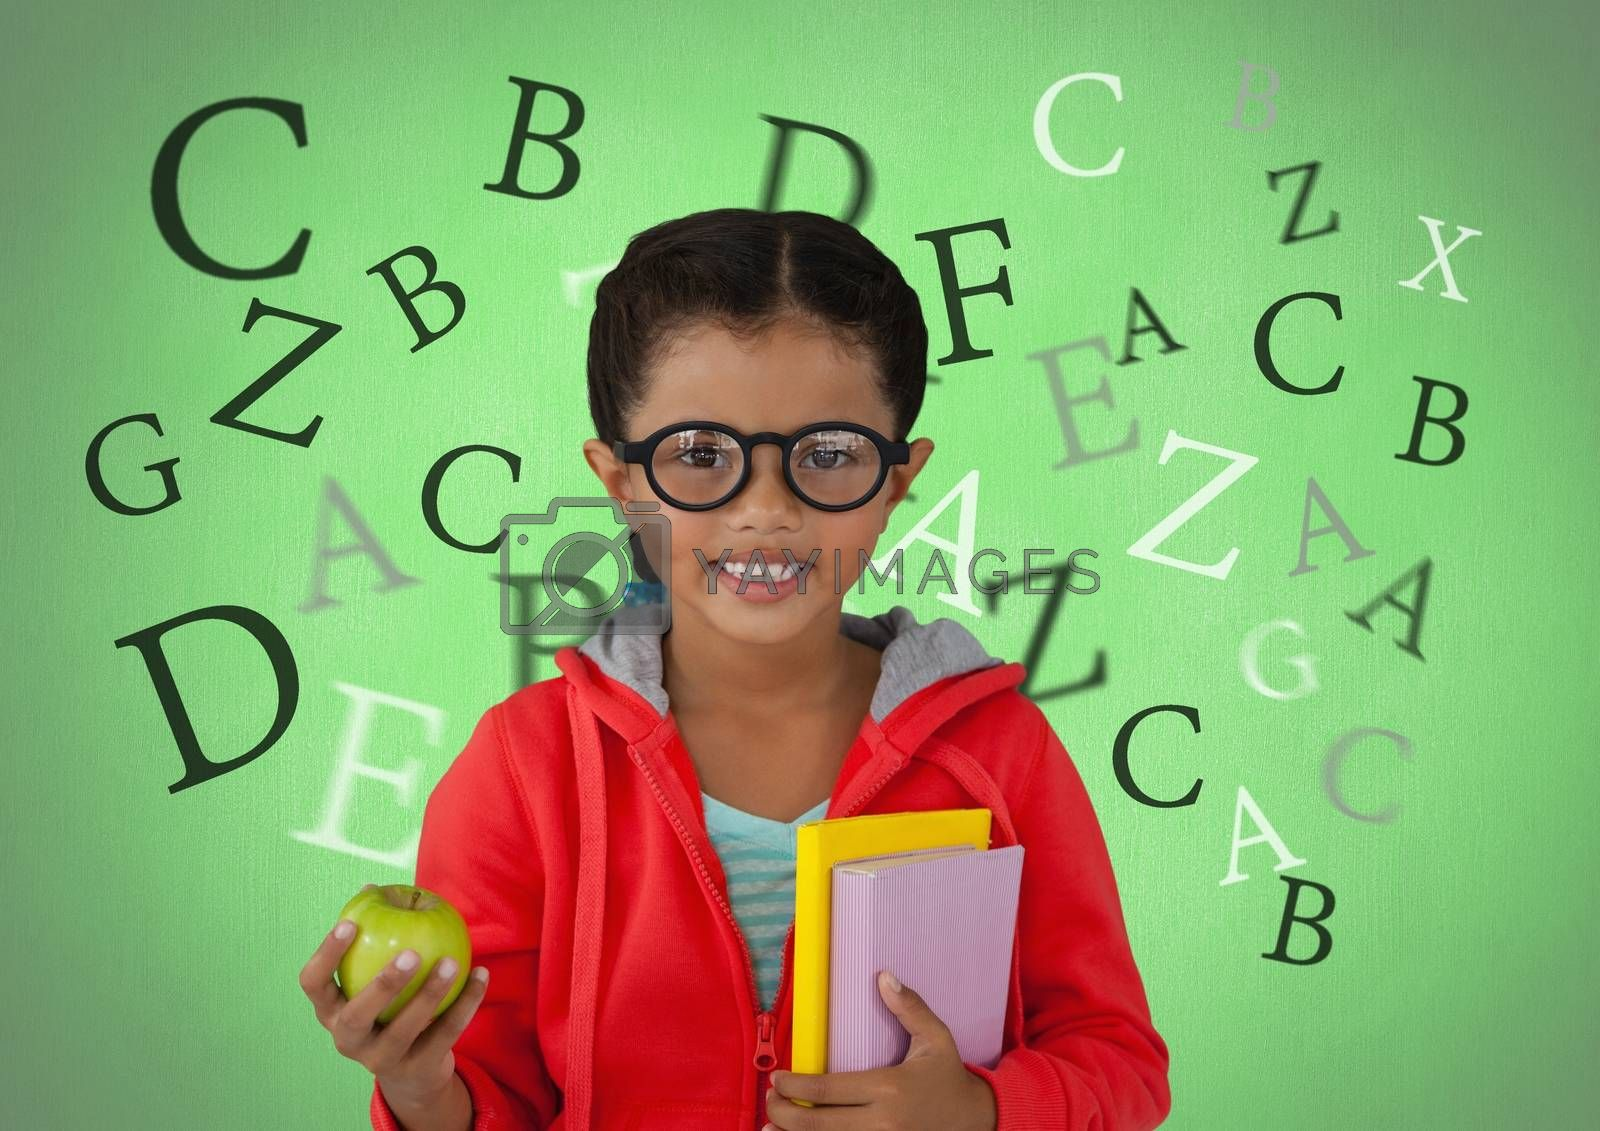 Many letters around Girl with apple and books in front of green background by Wavebreakmedia